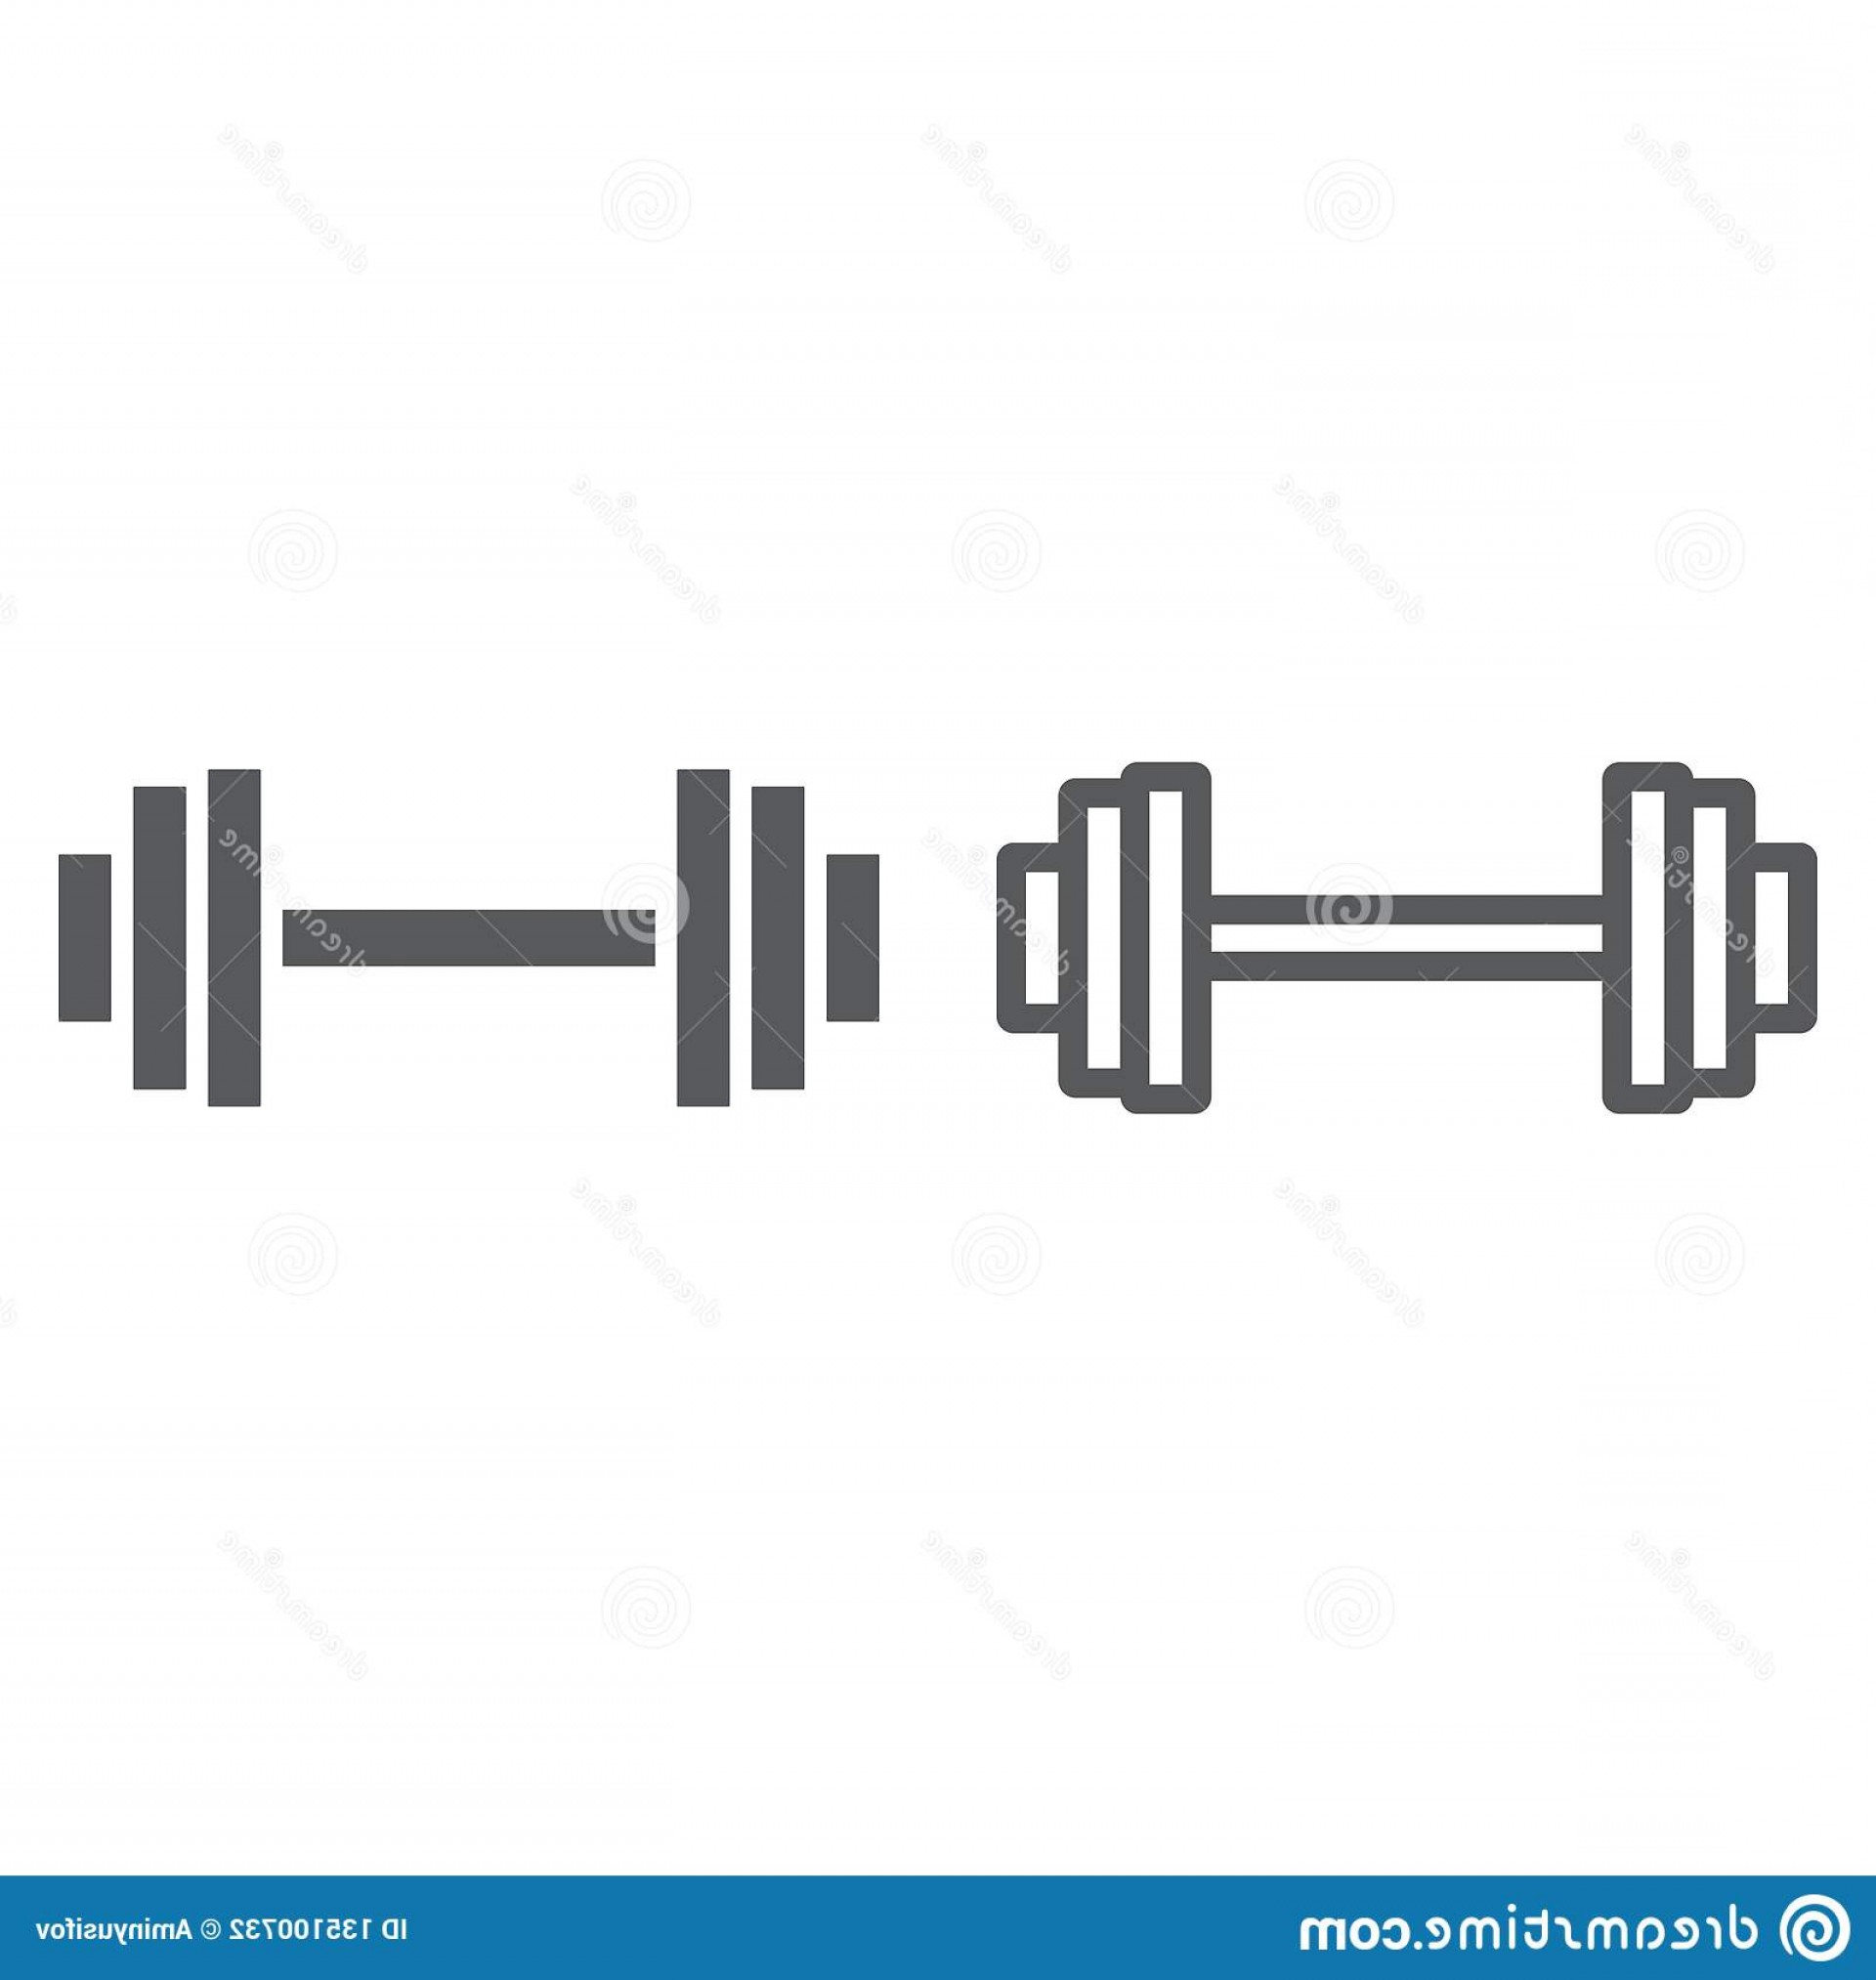 Weight Lifting Vector Graphics: Weightlifting Line Glyph Icon Gym Sport Barbell Sign Vector Graphics Linear Pattern White Background Weightlifting Image